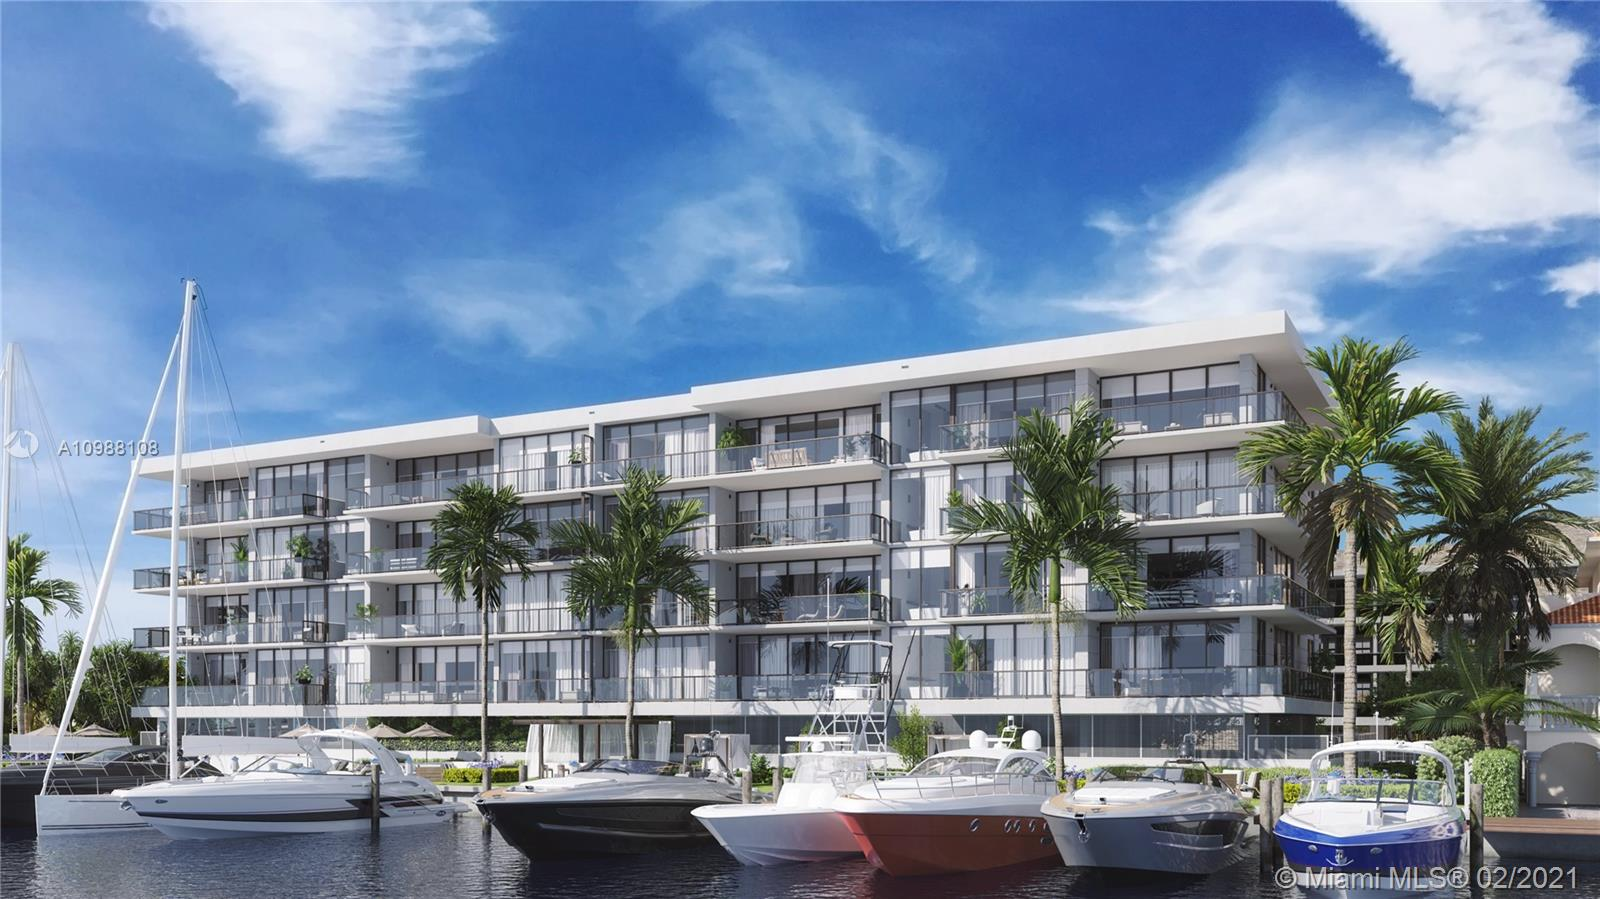 160 Marina Bay - Fort Lauderdale's most exclusive, ultra-luxurious boutique building. 5-stories & 16 striking three-bedroom finished residences w/ over 3,300 Total SF including expansive waterfront terraces. Centrally located within walking distance of Las Olas Blvd & the beach: the perfect blend of Beach & City! 10' ceilings, private elevator lobby to each residence, Italian cabinetry w/ high-end appliances, built-in bar in dining room, SMART HOME: control lights, front door, shades & even master shower by voice control! Private Marina w/ 14 boat slips, pool overlooking canal w/ cabana & BBQ area, self-servicing package lockers & more! Strategically located near the east-facing far end of Isle of Venice Dr. for added privacy & stunning waterway views. Slated completion EARLY 2022!